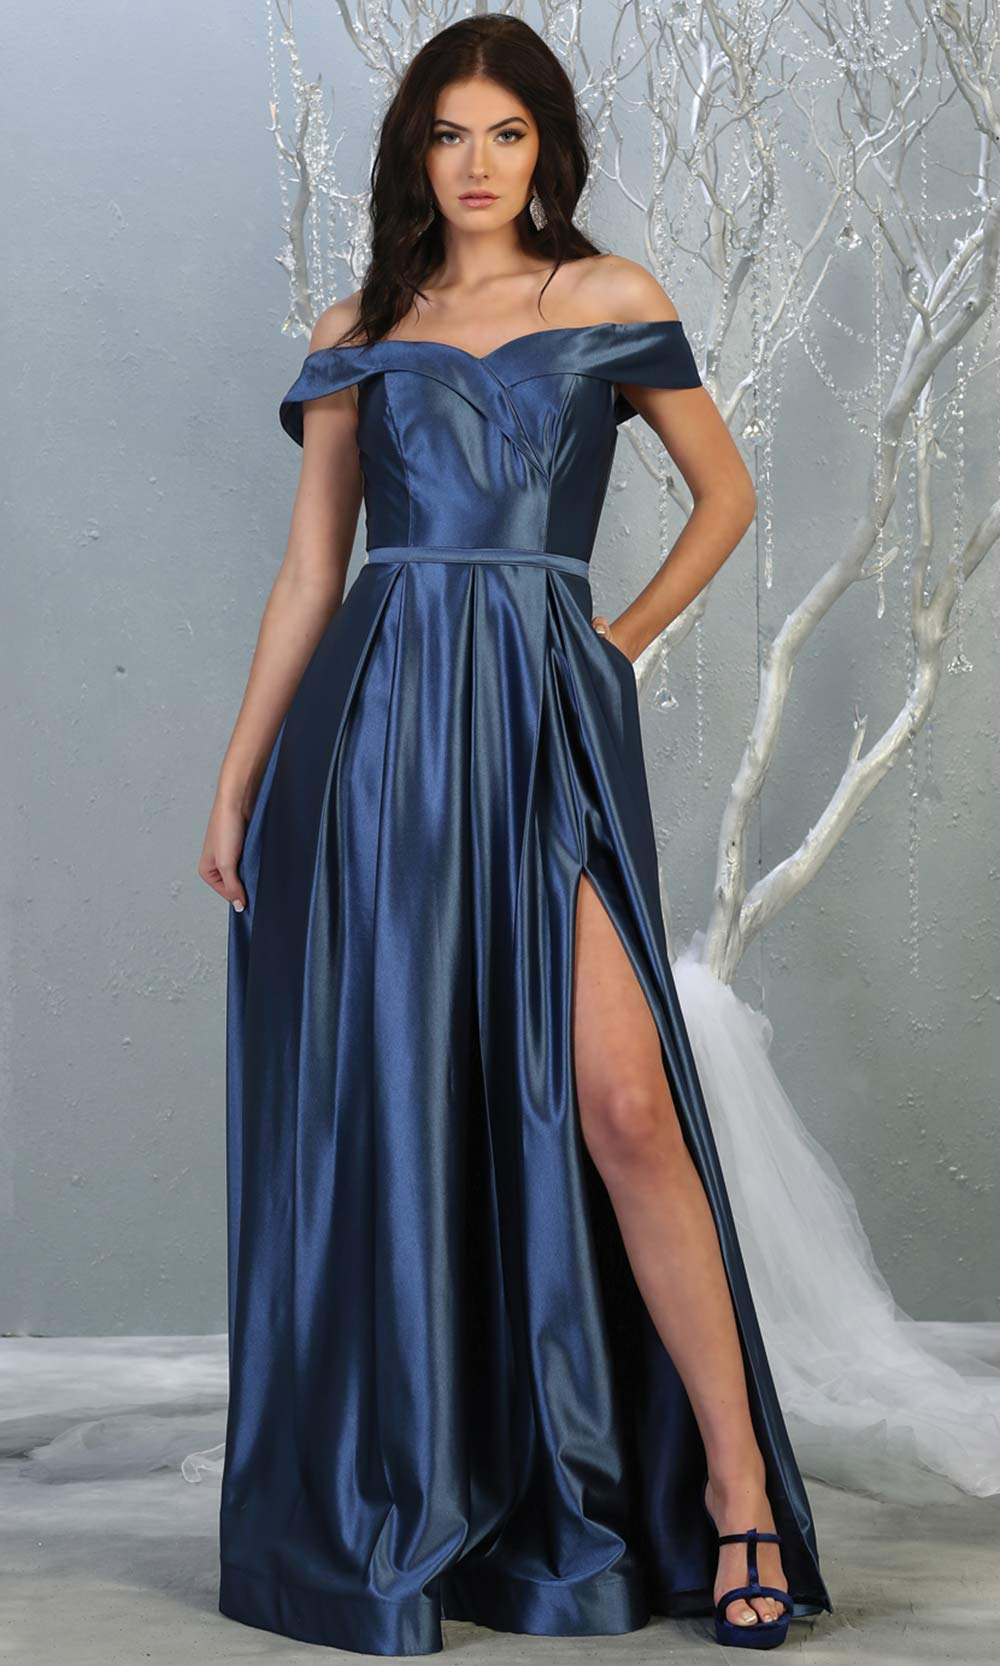 Mayqueen MQ 1781 long navy blue off shoulder evening flowy dress w/ high slit. Full length dark blue satin gown is perfect for  enagagement/e-shoot dress, formal wedding guest, indowestern gown, evening party dress, prom, bridesmaid. Plus sizes avail.jpg